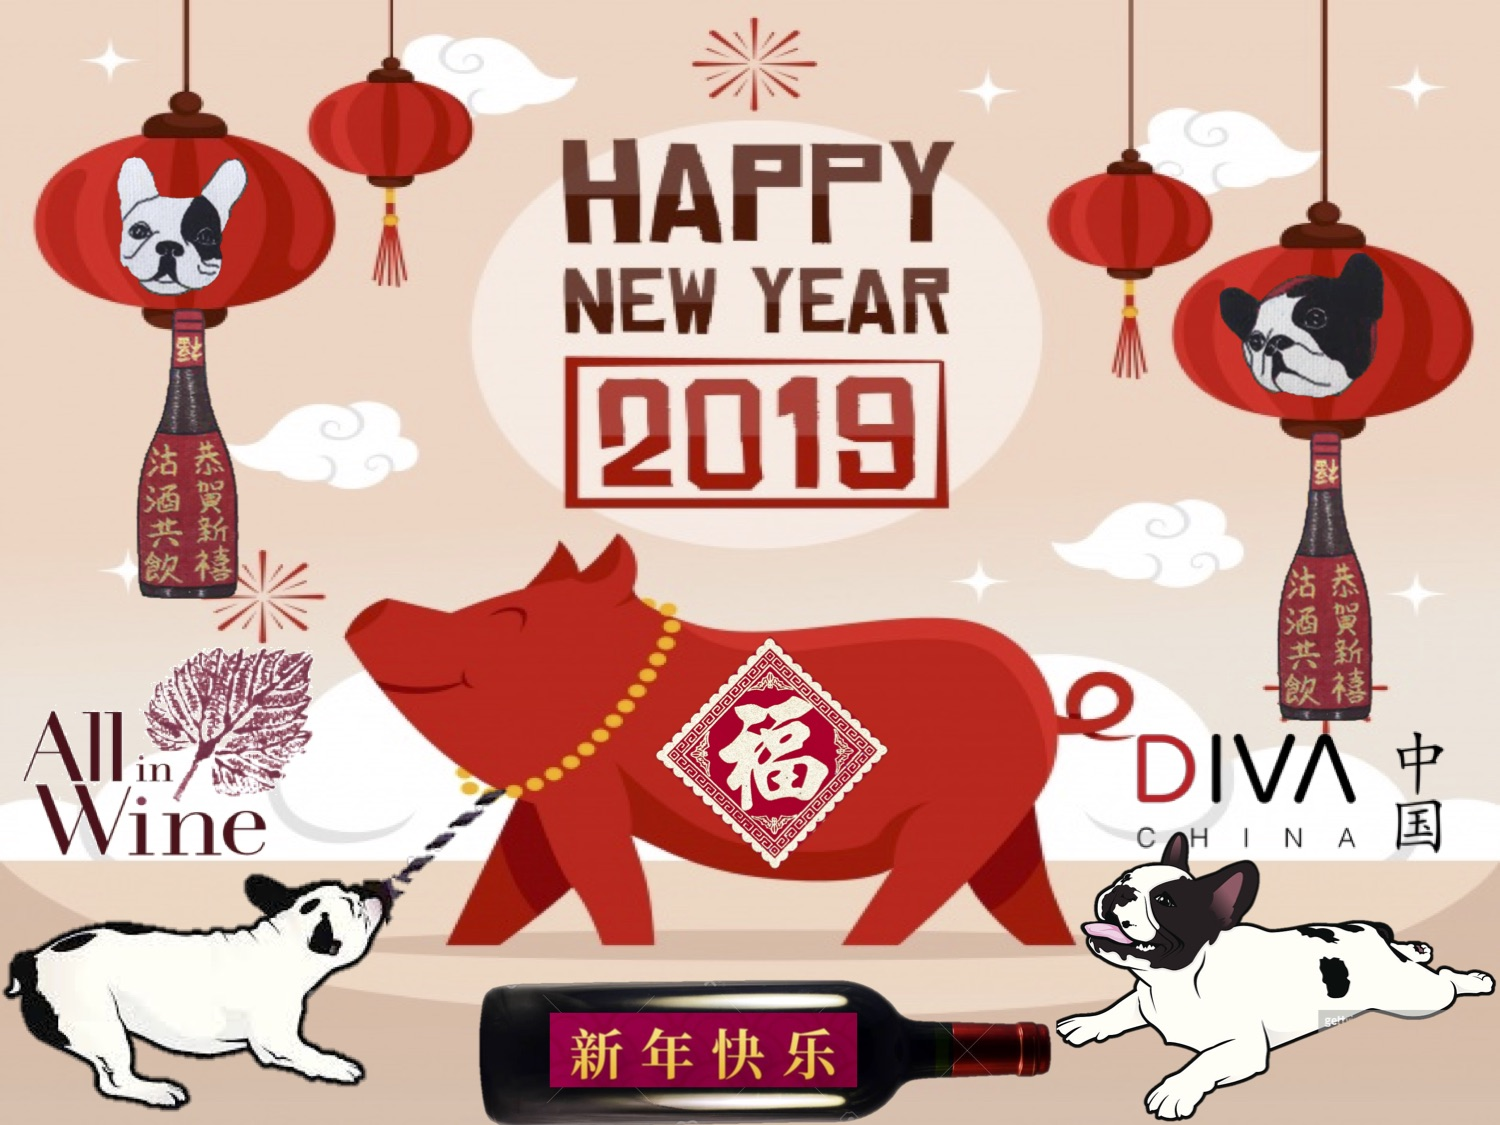 DIVA chinachinese new year 2019